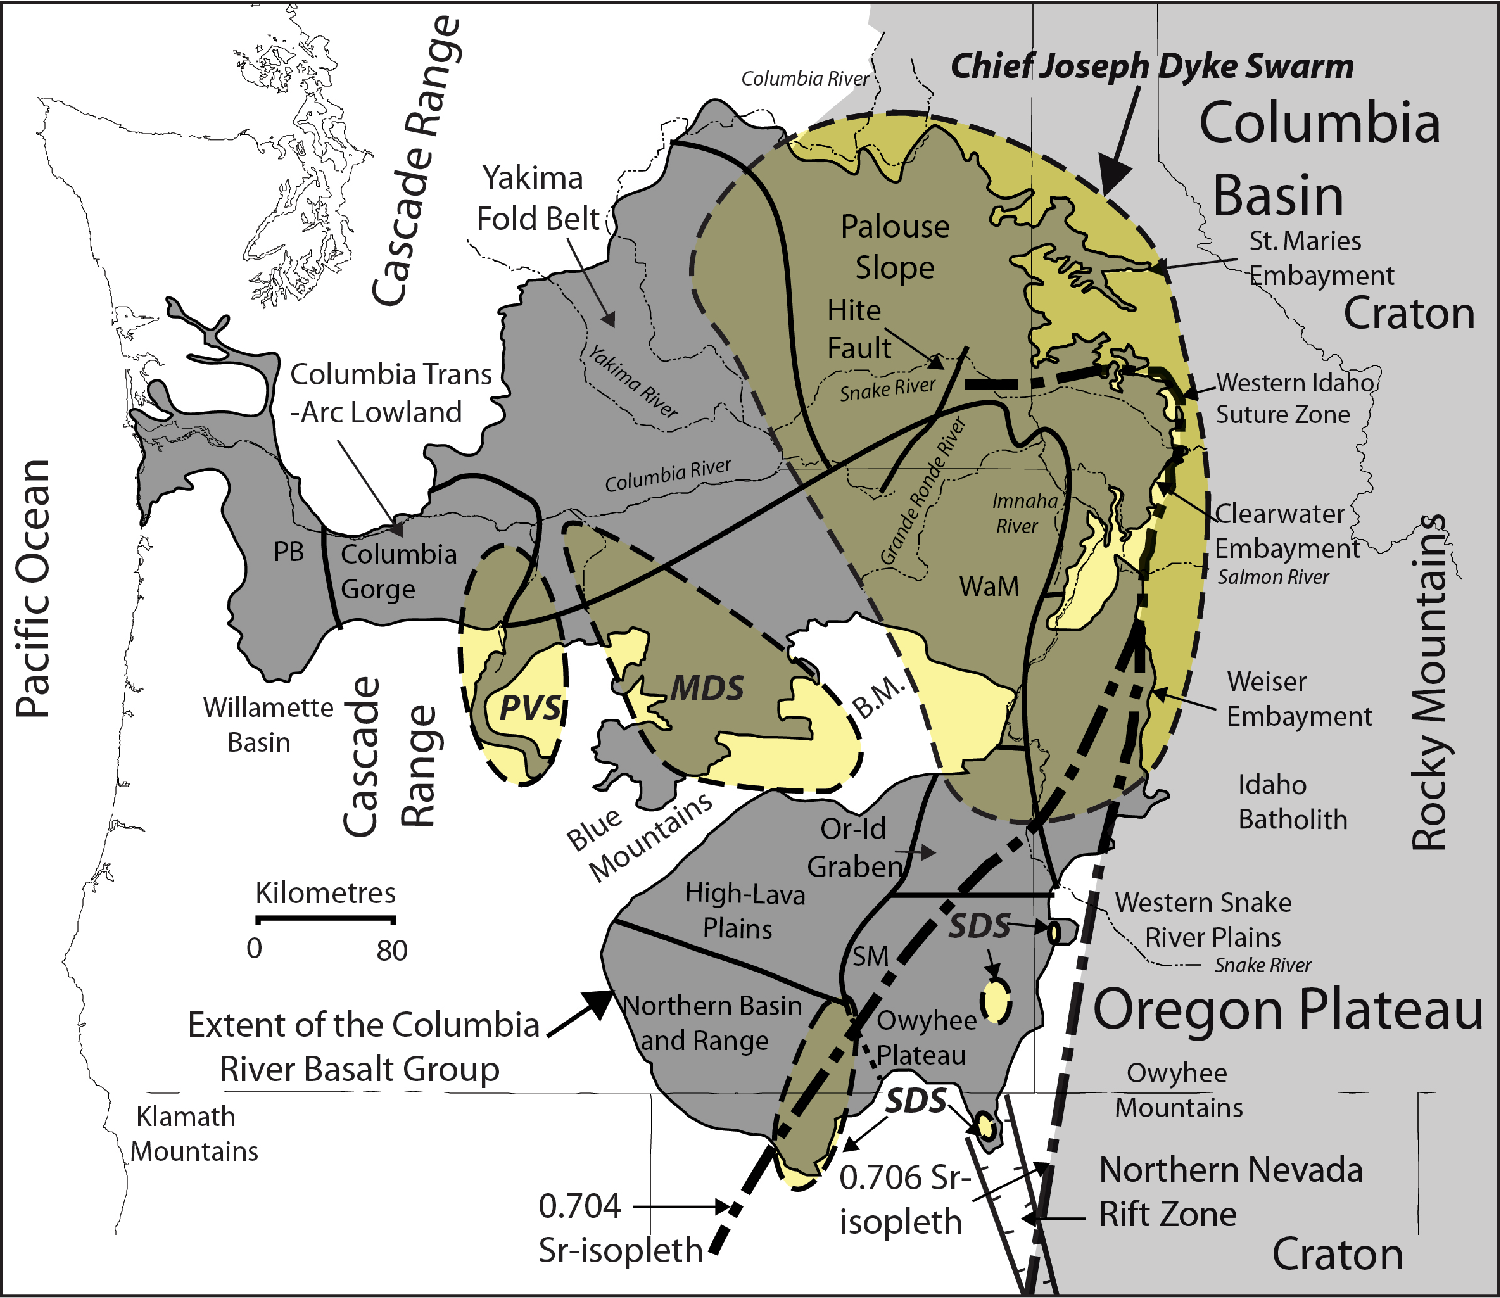 Image of: Figure 1 From Igneous Rock Associations 15 The Columbia River Basalt Group A Flood Basalt Province In The Pacific Northwest Usa Semantic Scholar